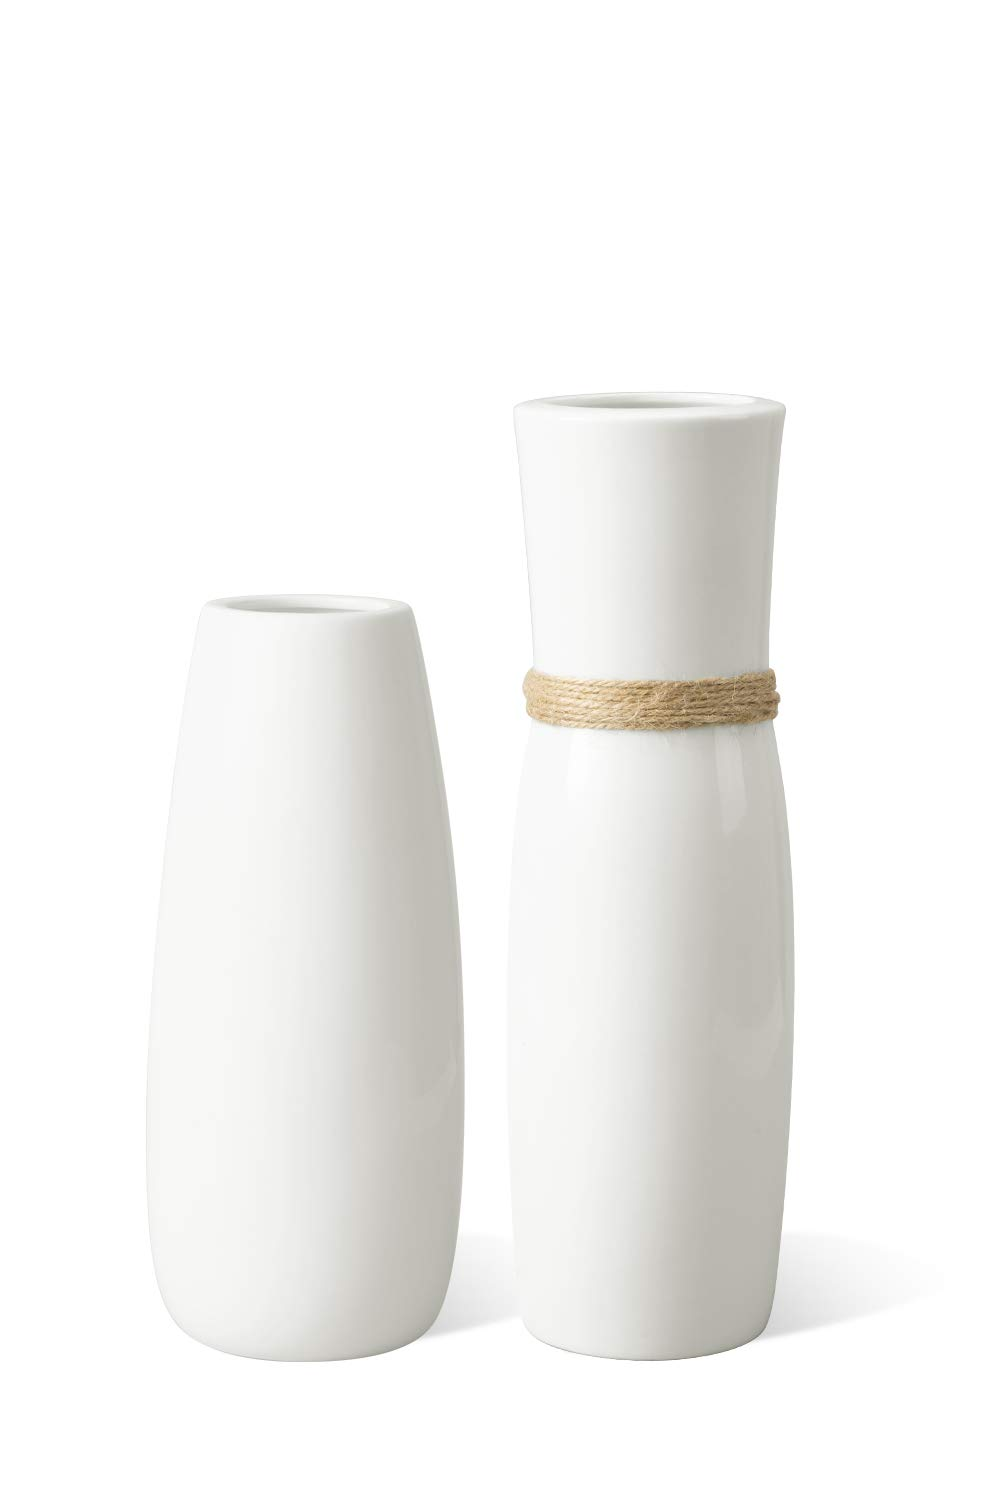 MoonLa White Ceramic Vases Flower Vase with differing Unique Rope Design for Home Décor – Set of 2